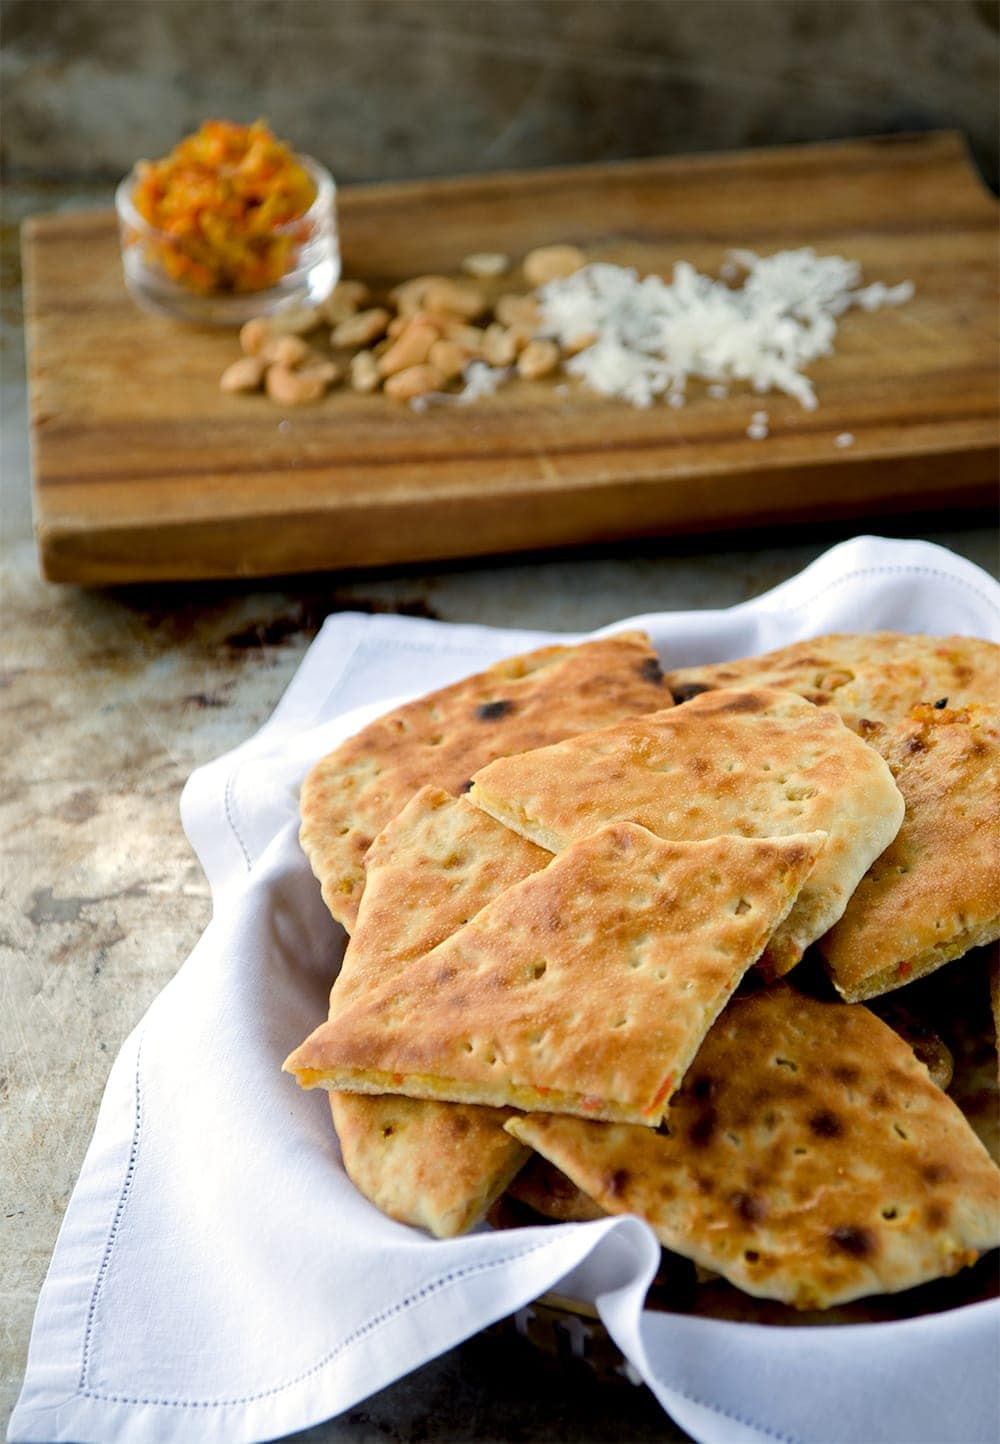 Royal Special Naan Web - Stuffed Naan Recipe with Candied Carrots, Cashews and Coconut